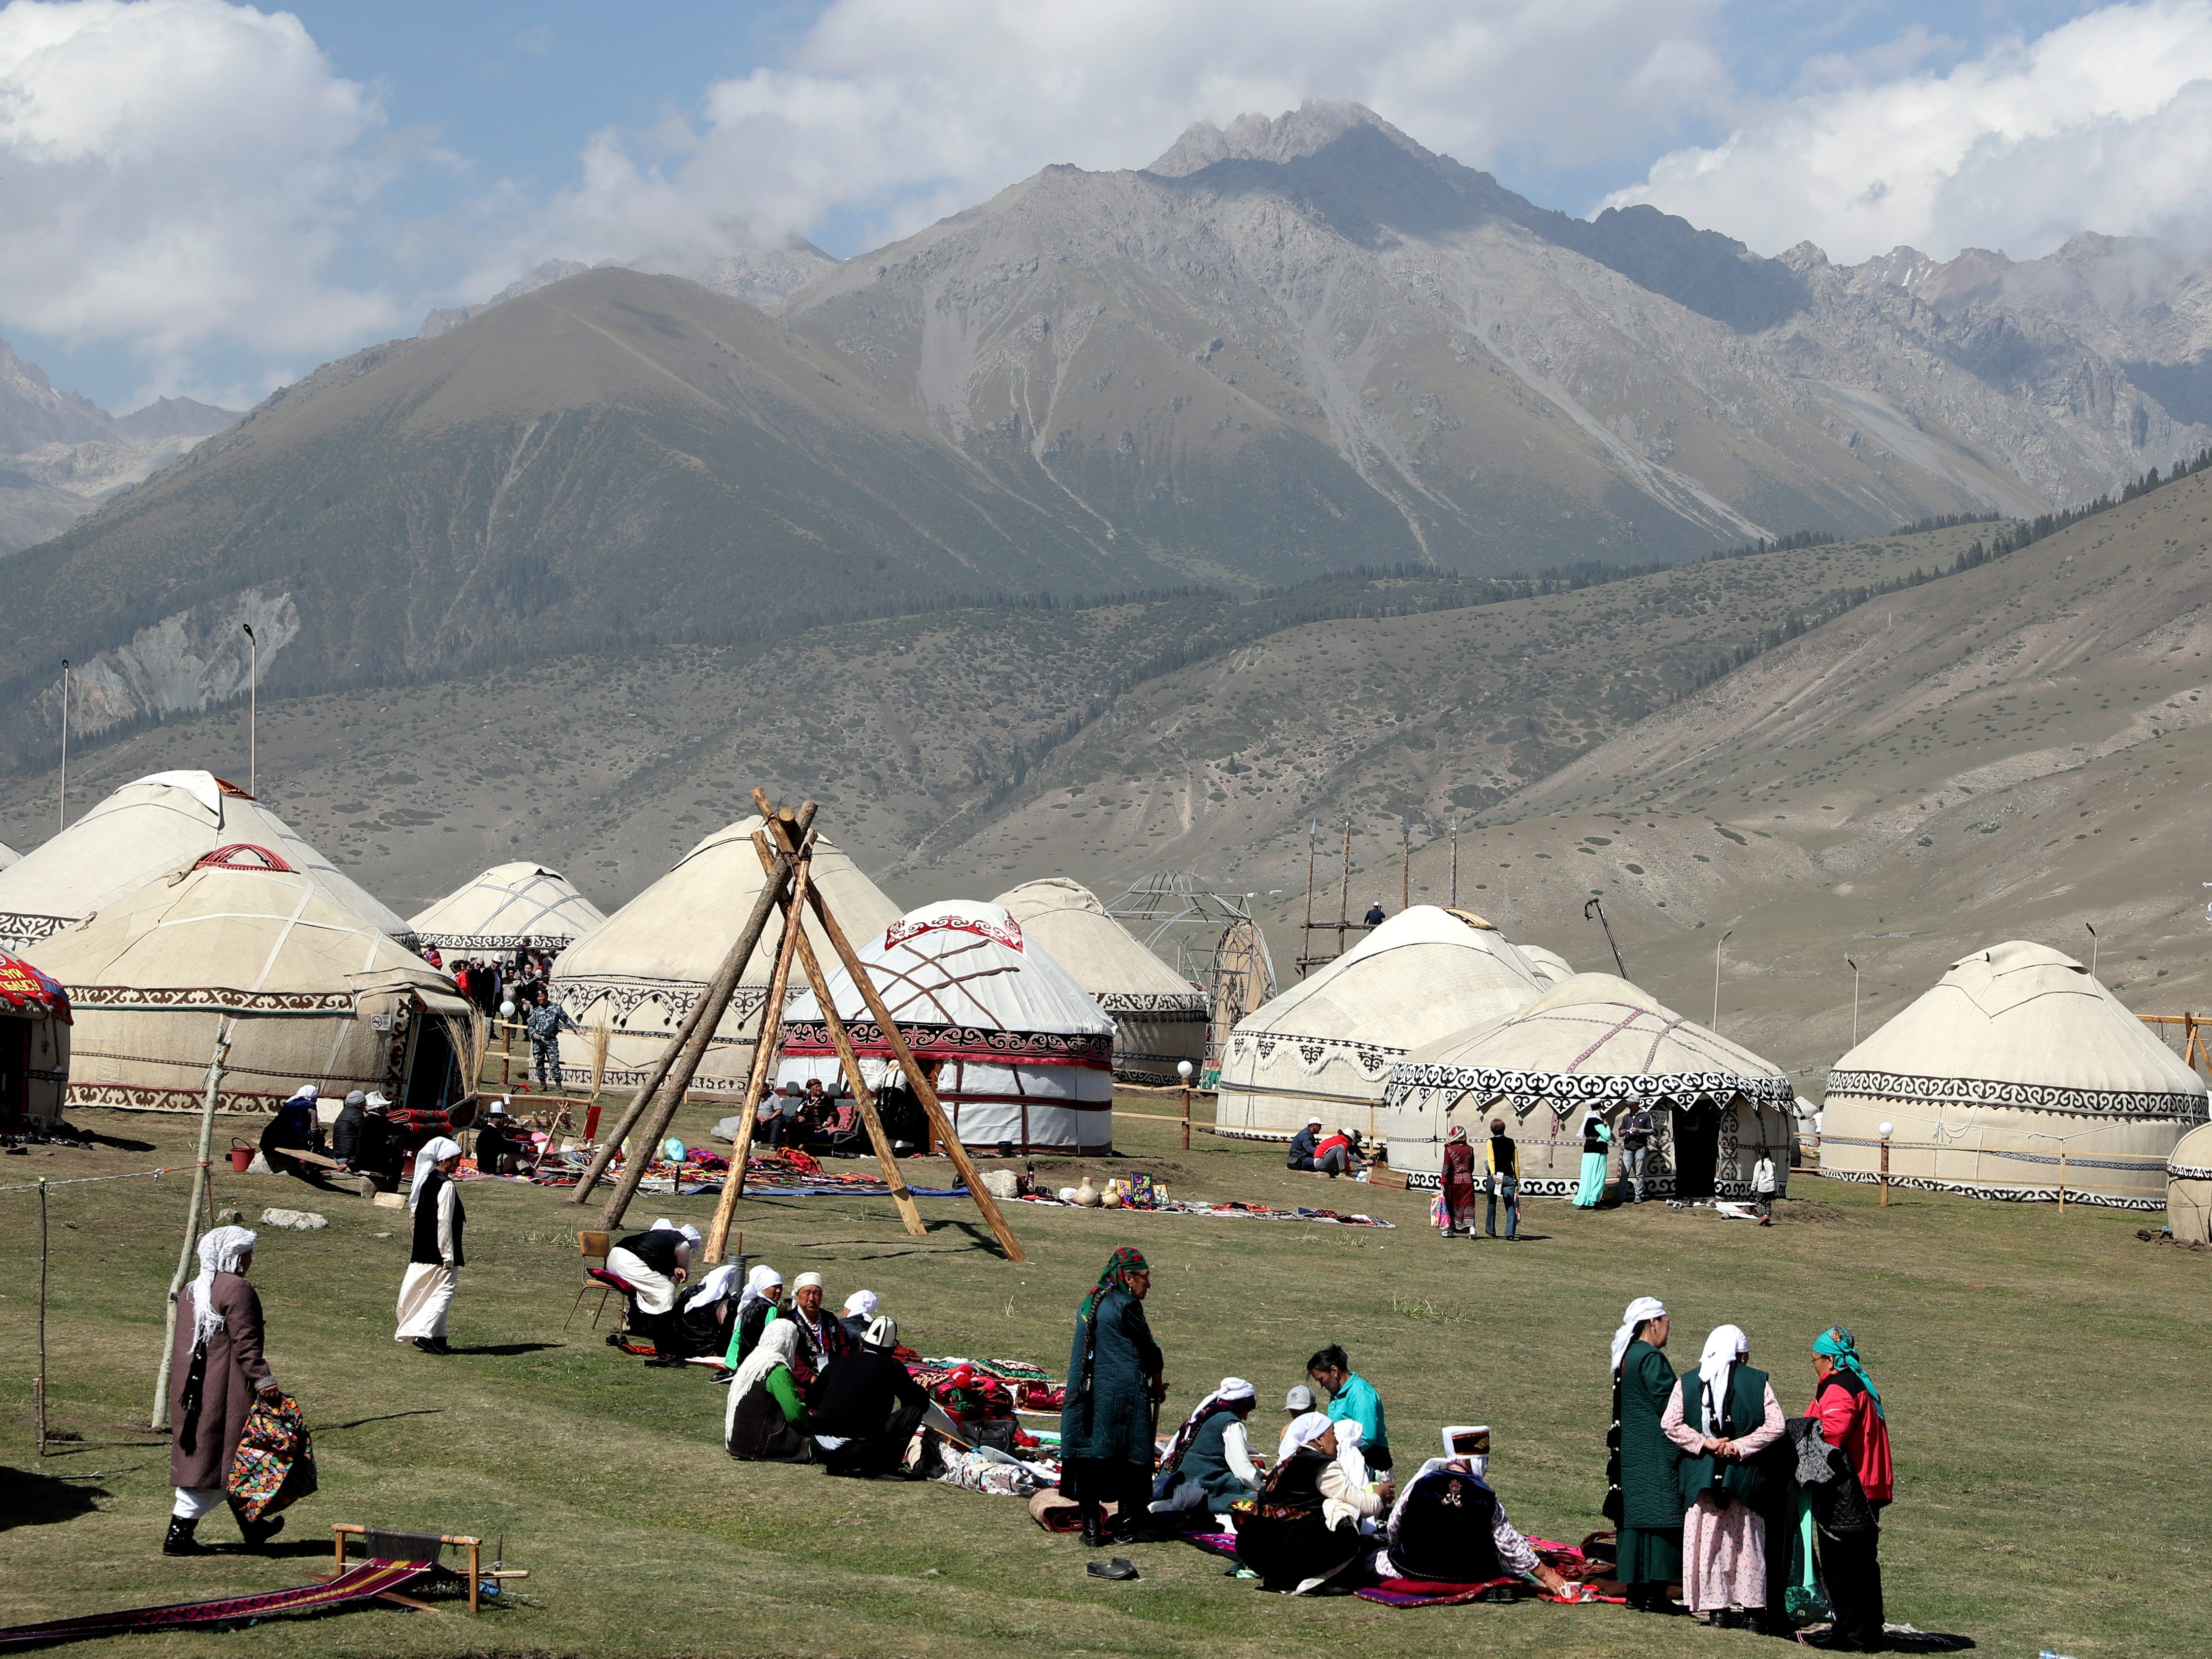 A yurt town can be seen during the third World Nomad Games in Cholpon-Ata, Kyrgyzstan, Sept. 4, 2018.